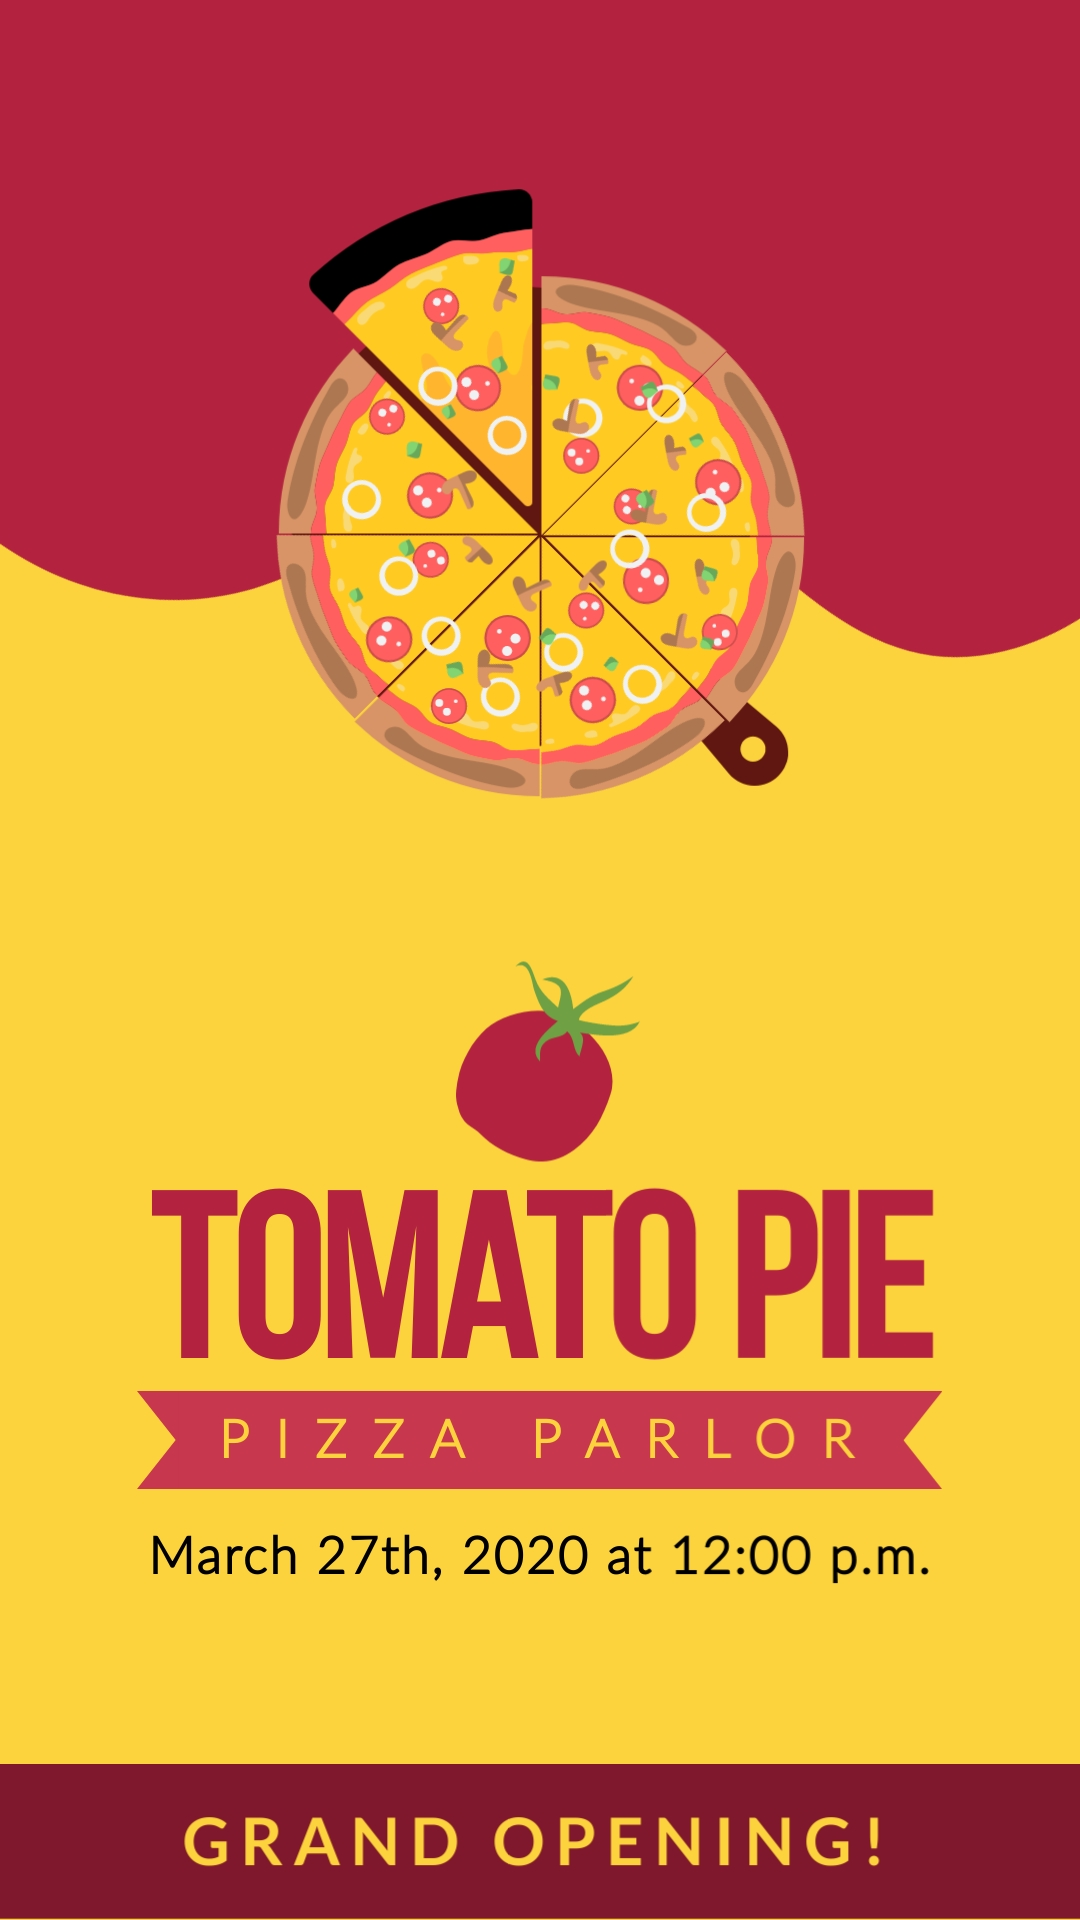 Pizza Place Vertical Template